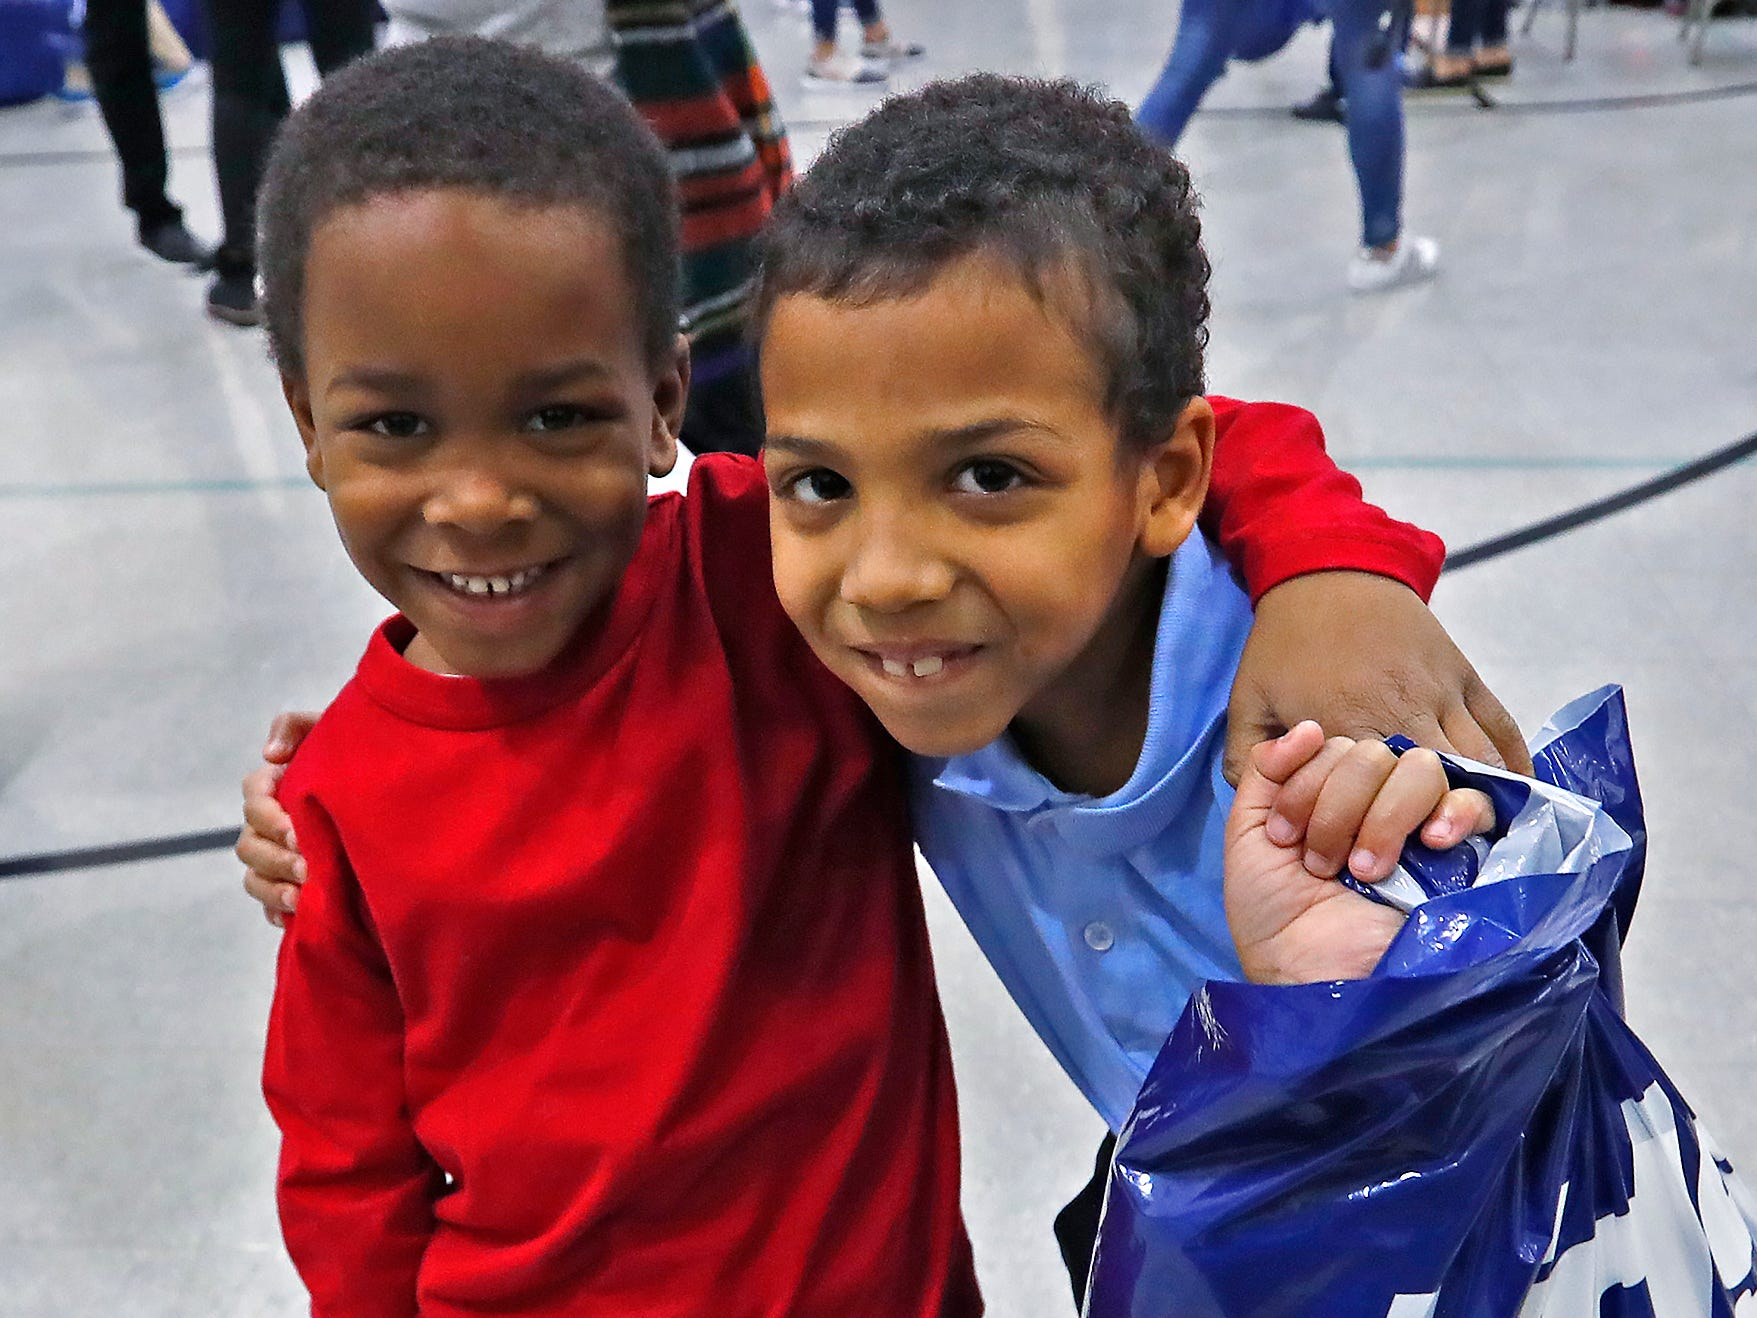 Friends show off their new things, including new shoes, at Brookside School 54, Monday, Dec. 3, 2018.  Colts players and staff joined as LIDS Sports and its parent company Genesco fit and gave new shoes, socks, hats, and snacks to students as part of the 13th annual Cold Feet, Warm Shoes event.